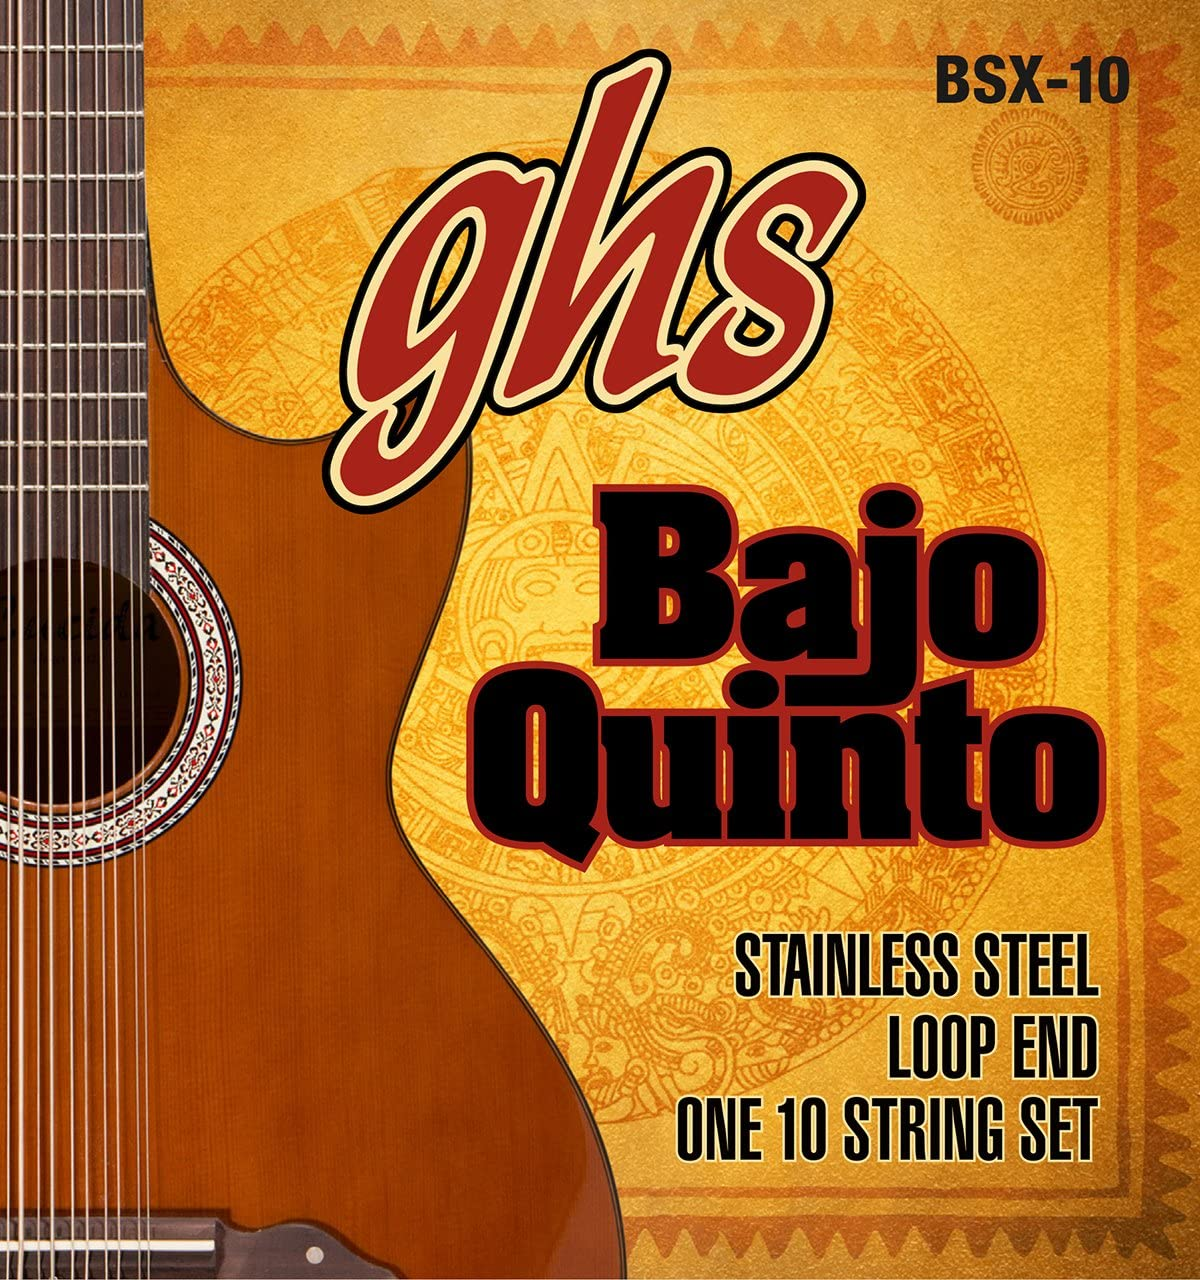 GHS Strings STAINLESS OFFicial shop STEEL BAJO Loop Fees free End QUINTO -